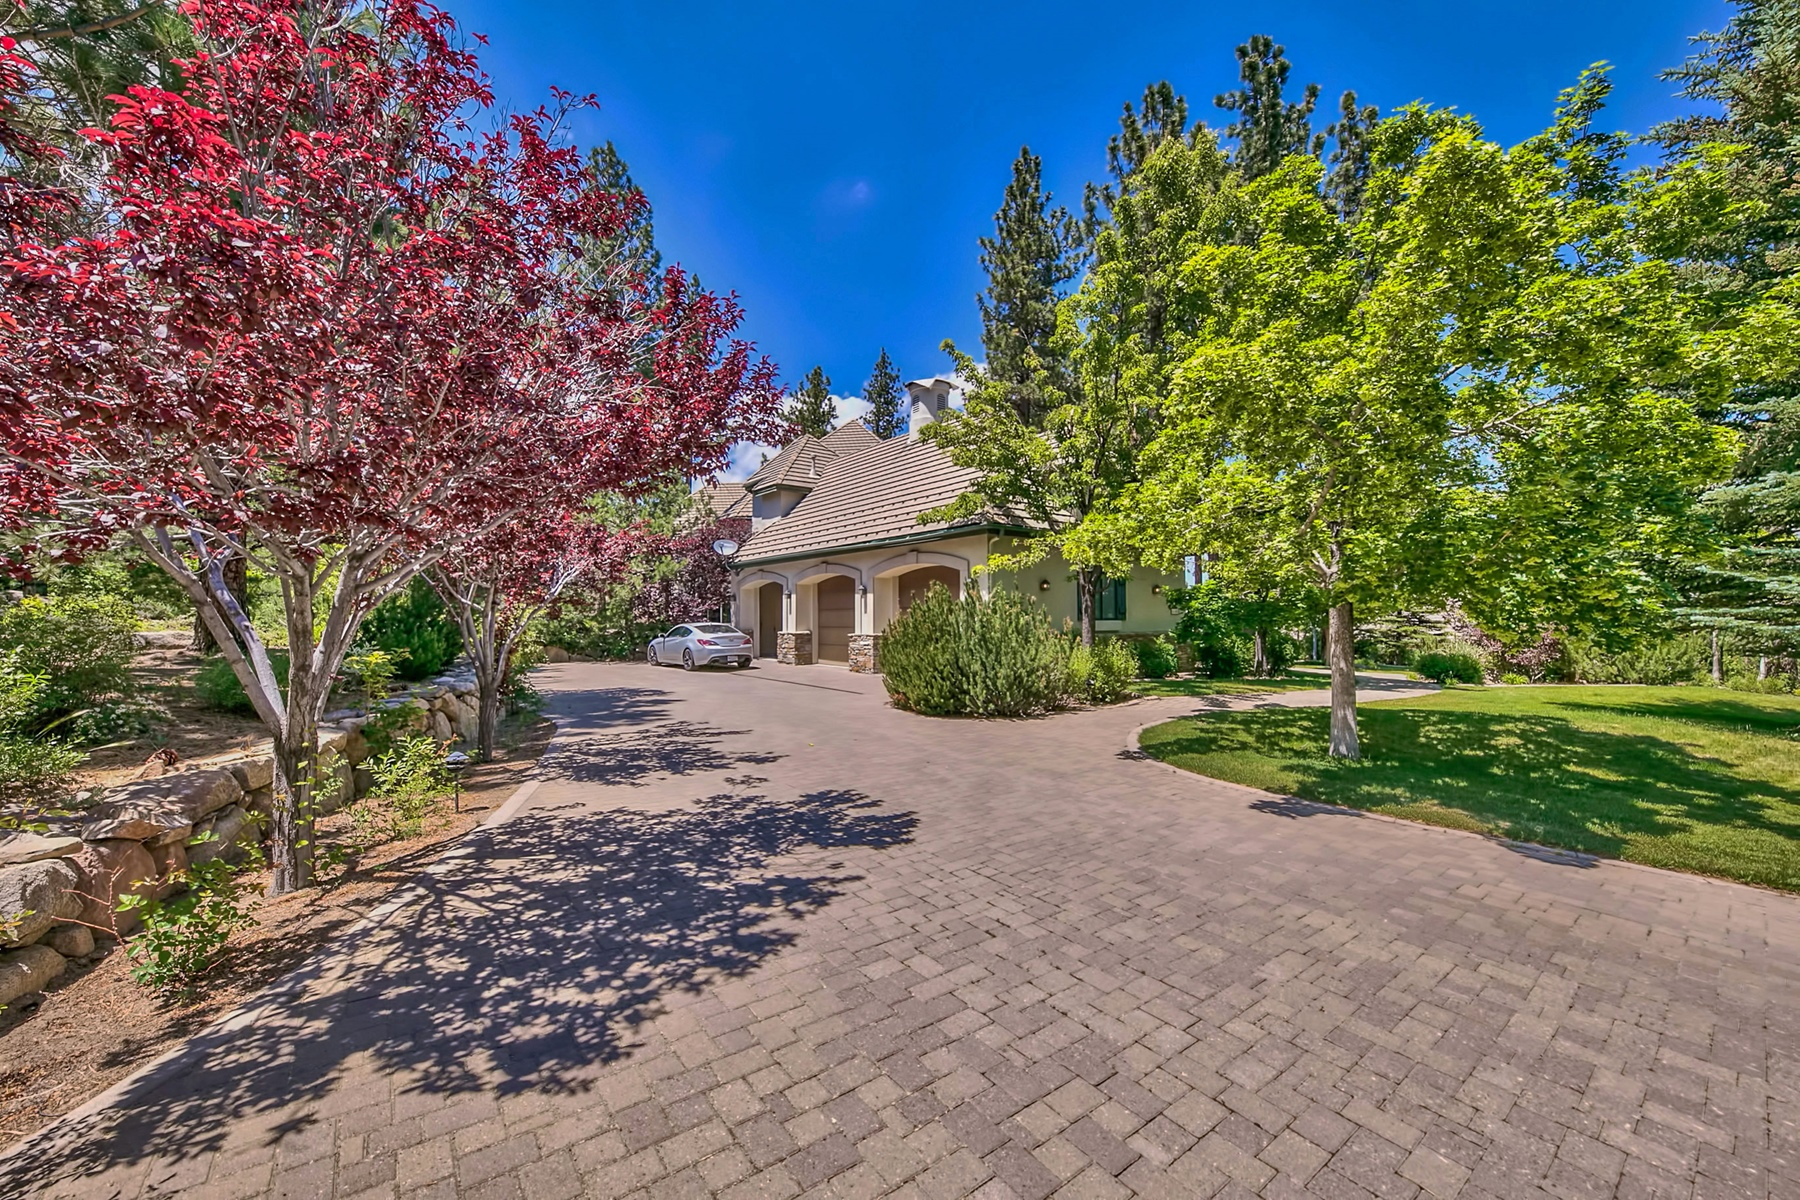 Additional photo for property listing at 5695 Lausanne Drive, Reno Nevada 5695 Lausanne Drive Reno, Nevada 89511 United States